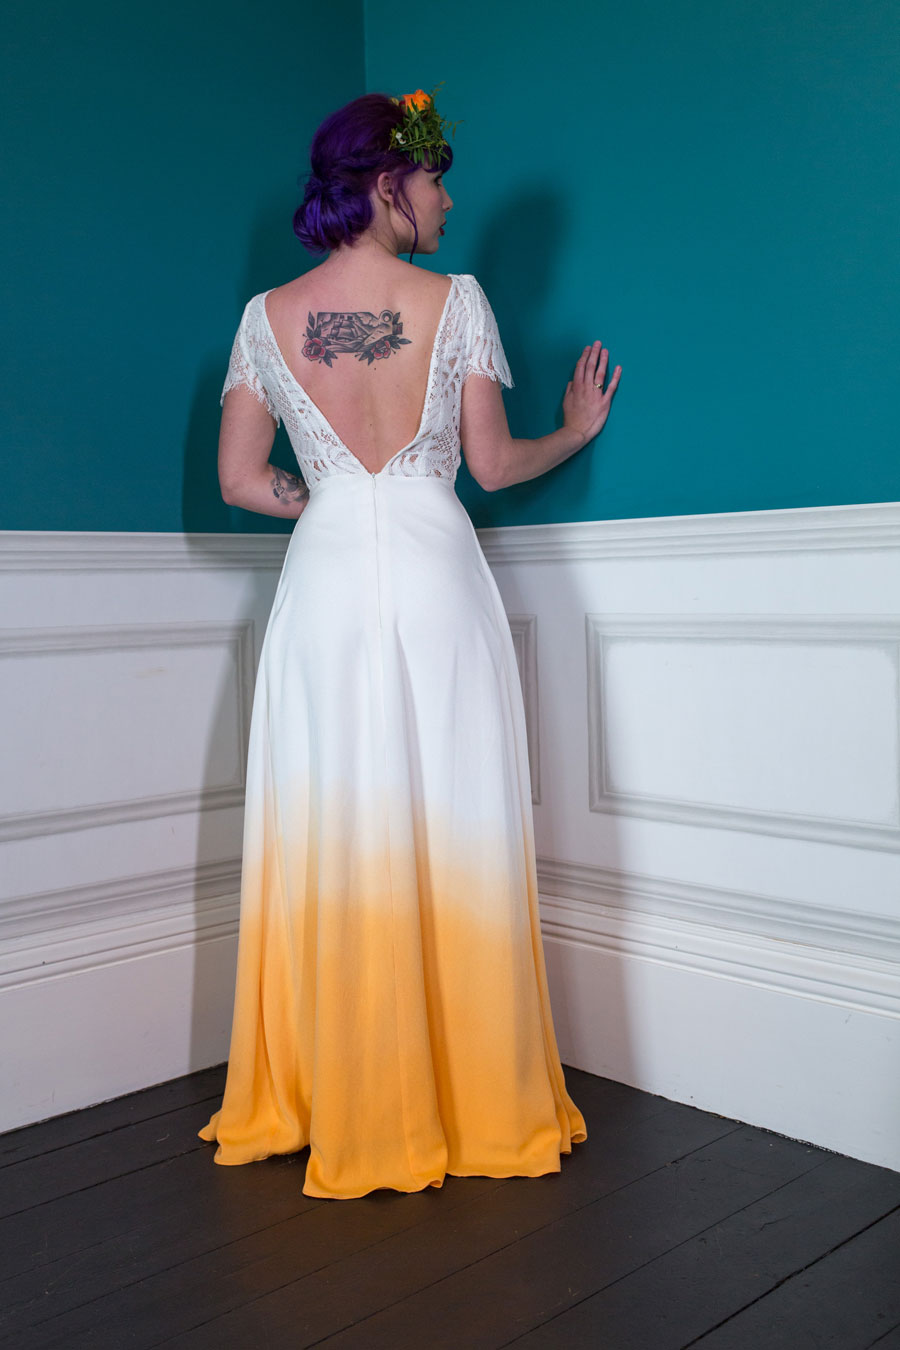 Quirky Wedding Dresses For Non-Traditional Brides- Lucy Can't Dance0039